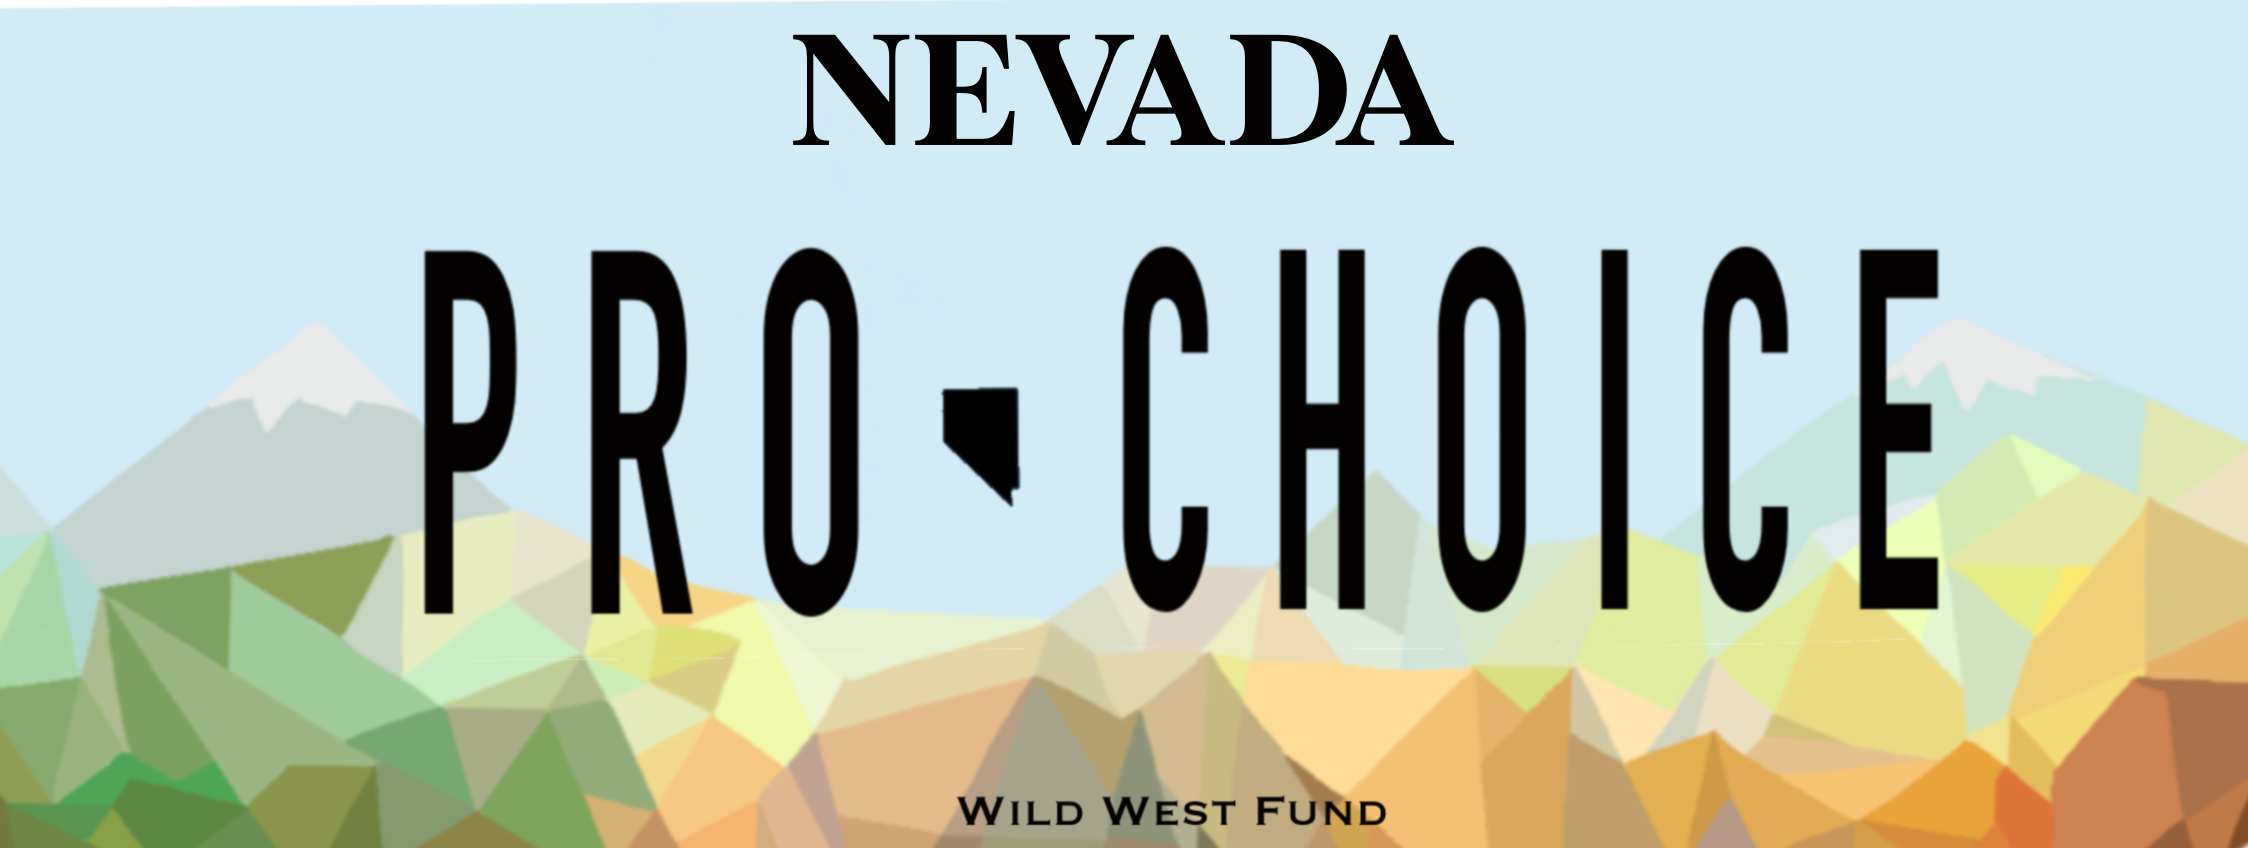 Nevada mountains with pro-choice label